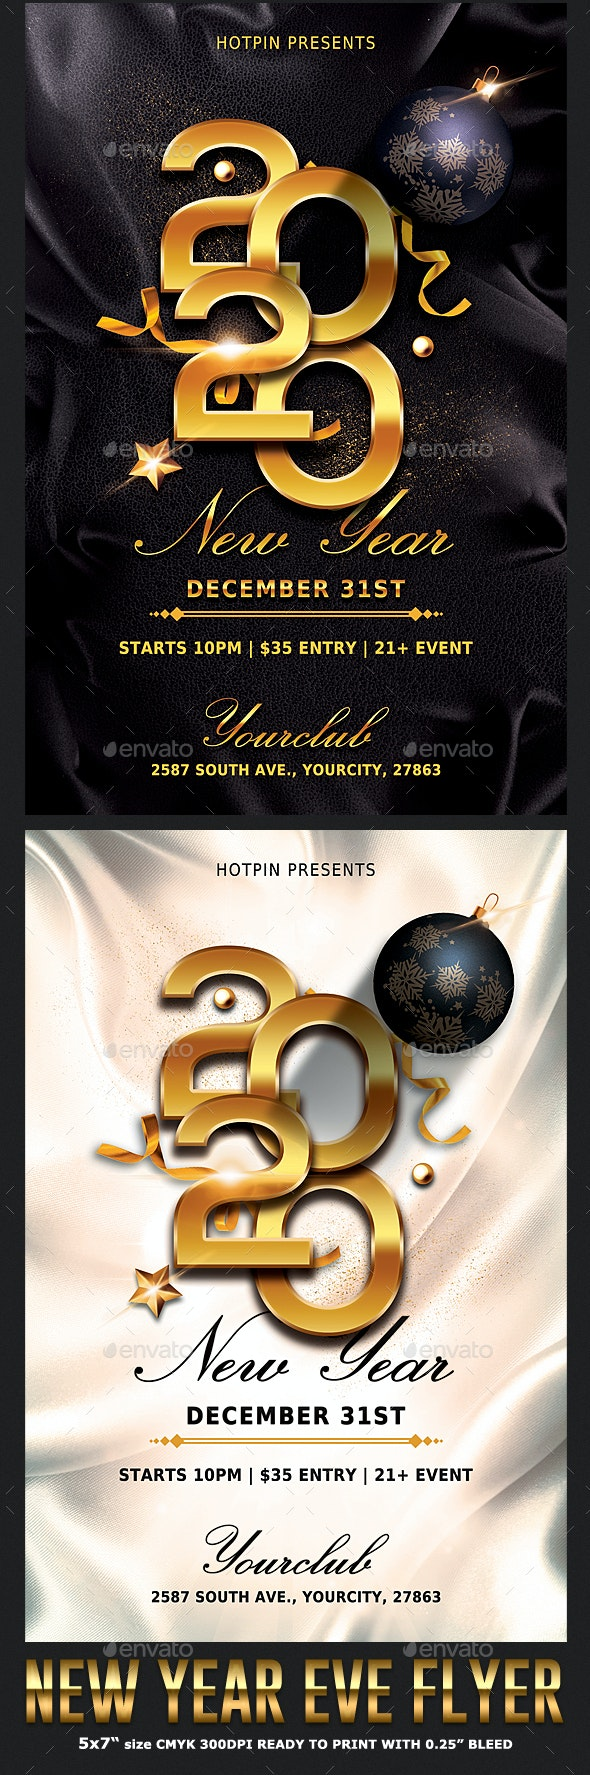 Classy New Year Party Flyer - Holidays Events